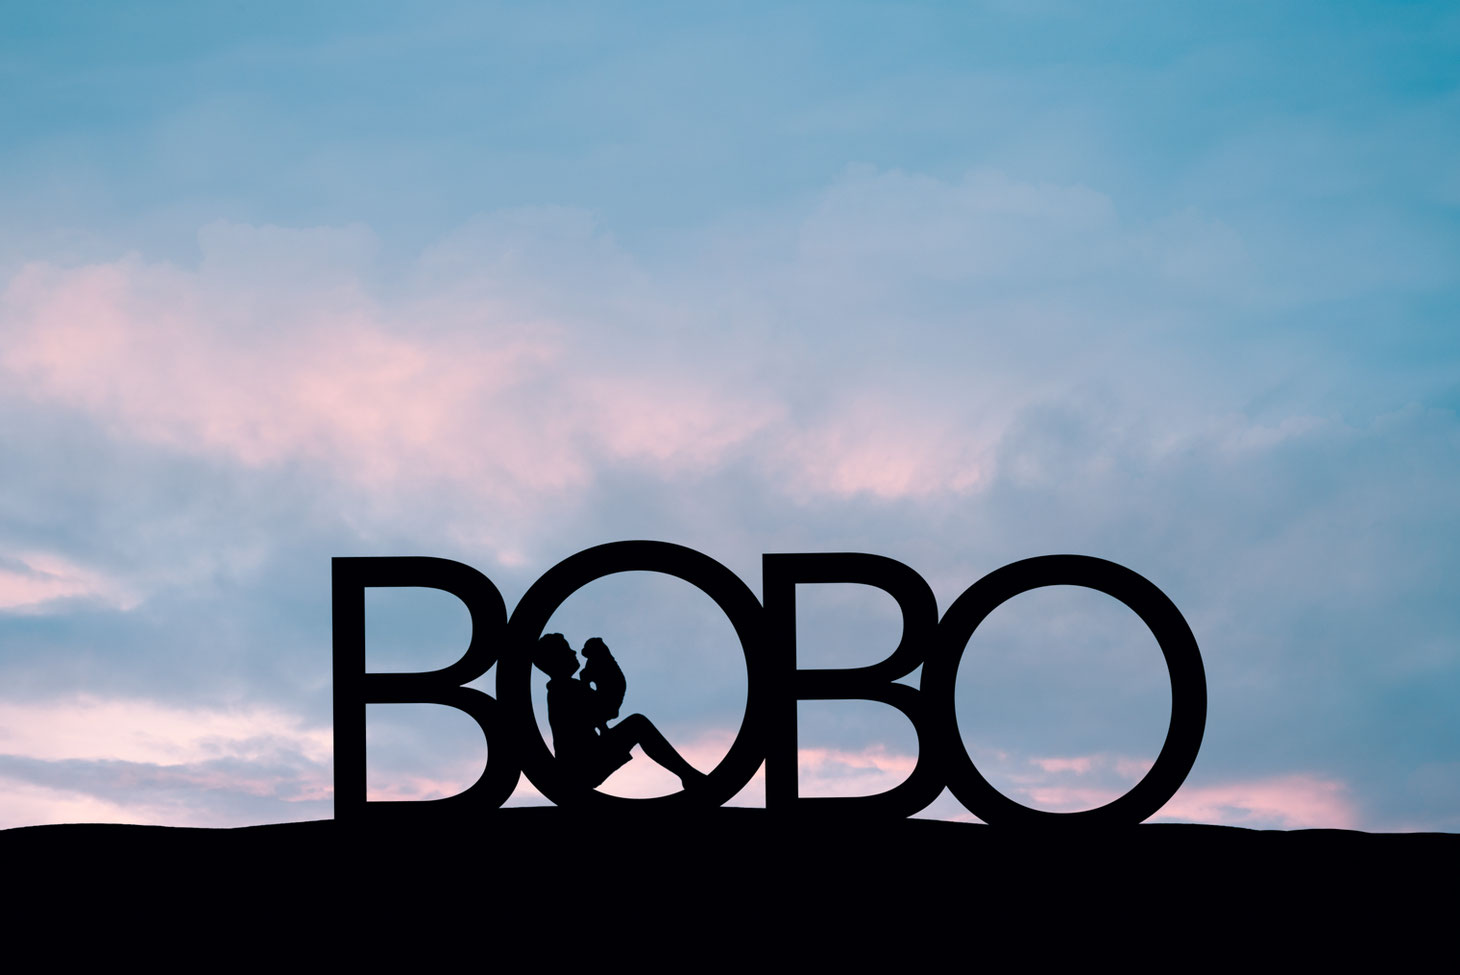 silhouette of boy and dog in the first O in the word BOBO. Sky is pink and blue.